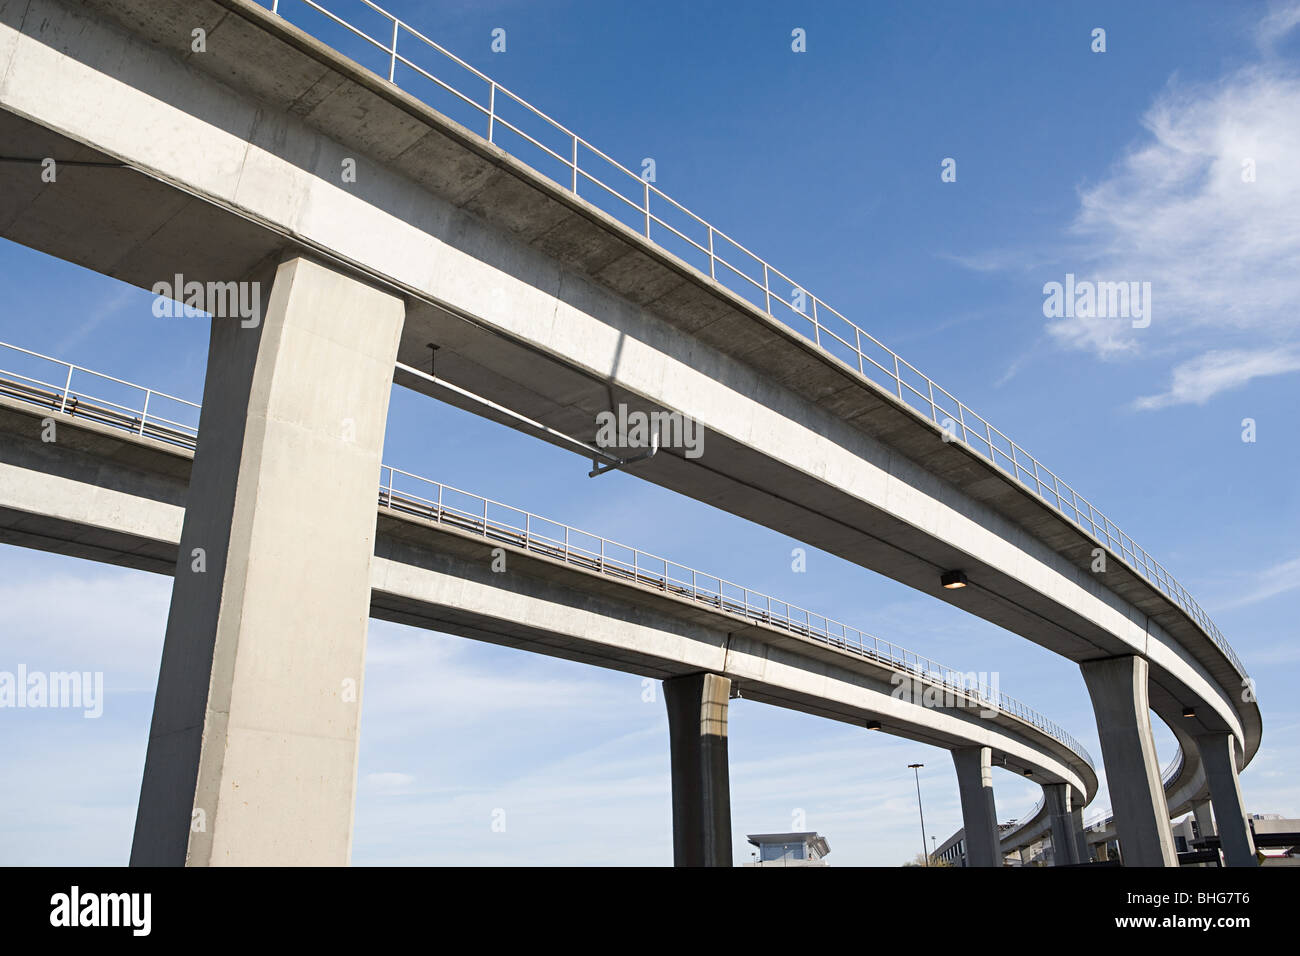 Elevated highways - Stock Image